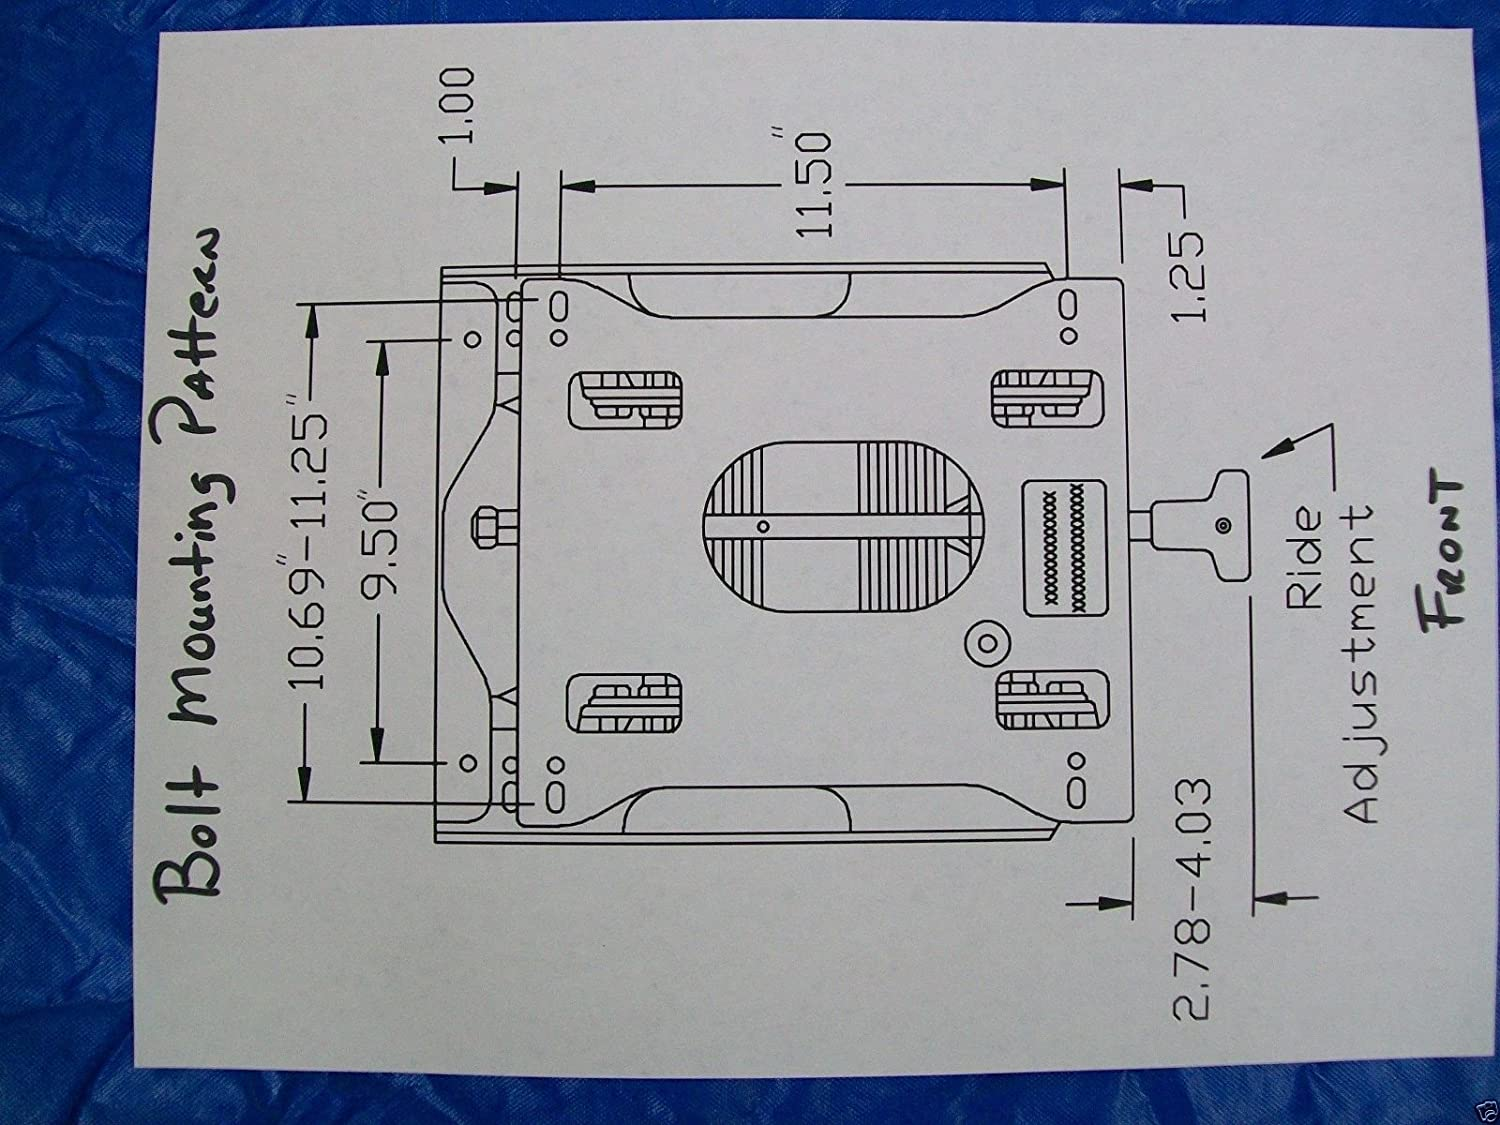 "Seats, Inc SEAT Suspension EXMARK, KUBOTA, John Deere, Z TRAK, Toro, on john deere cylinder head, john deere riding mower diagram, john deere 345 diagram, john deere 3020 diagram, john deere gt235 diagram, john deere fuel gauge wiring, john deere power beyond diagram, john deere 310e backhoe problems, john deere repair diagrams, john deere fuse box diagram, john deere chassis, john deere rear end diagrams, john deere tractor wiring, john deere fuel system diagram, john deere voltage regulator wiring, john deere 212 diagram, john deere 42"" deck diagrams, john deere starters diagrams, john deere sabre mower belt diagram, john deere electrical diagrams,"